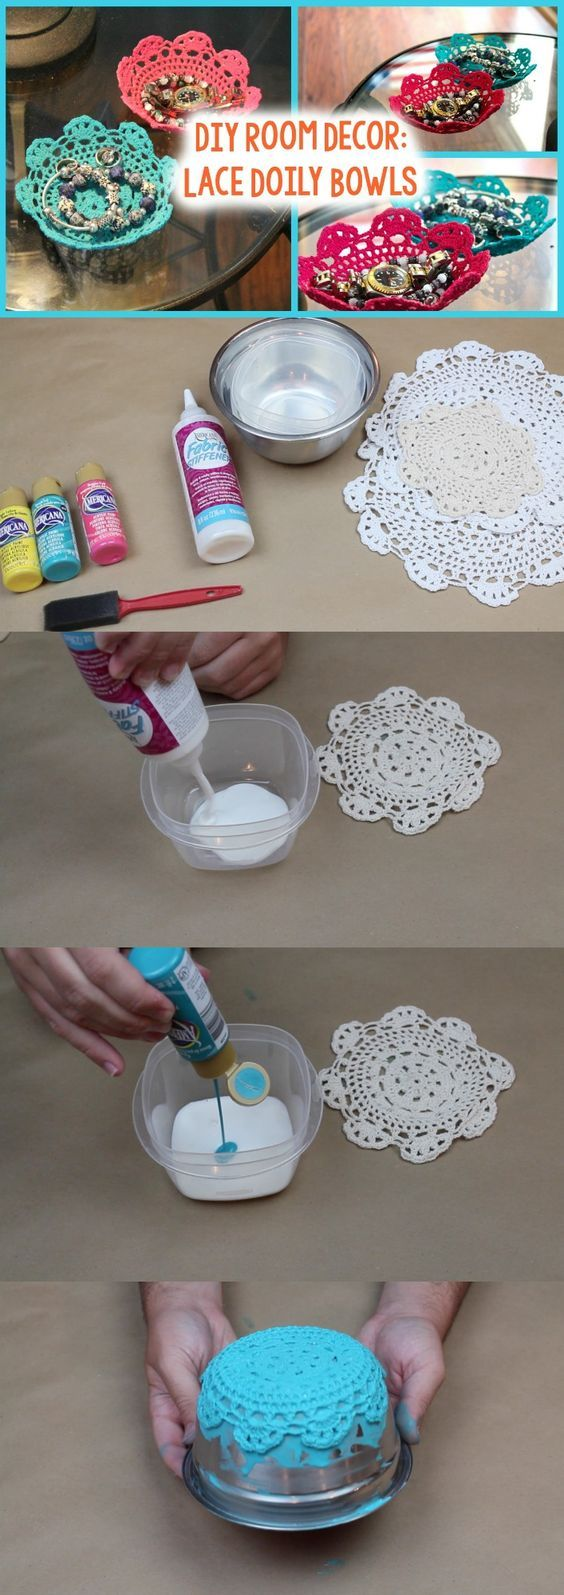 DIY Lace Doily Bowl - Perfect DIY to hold jewlery from Tanner Bell: